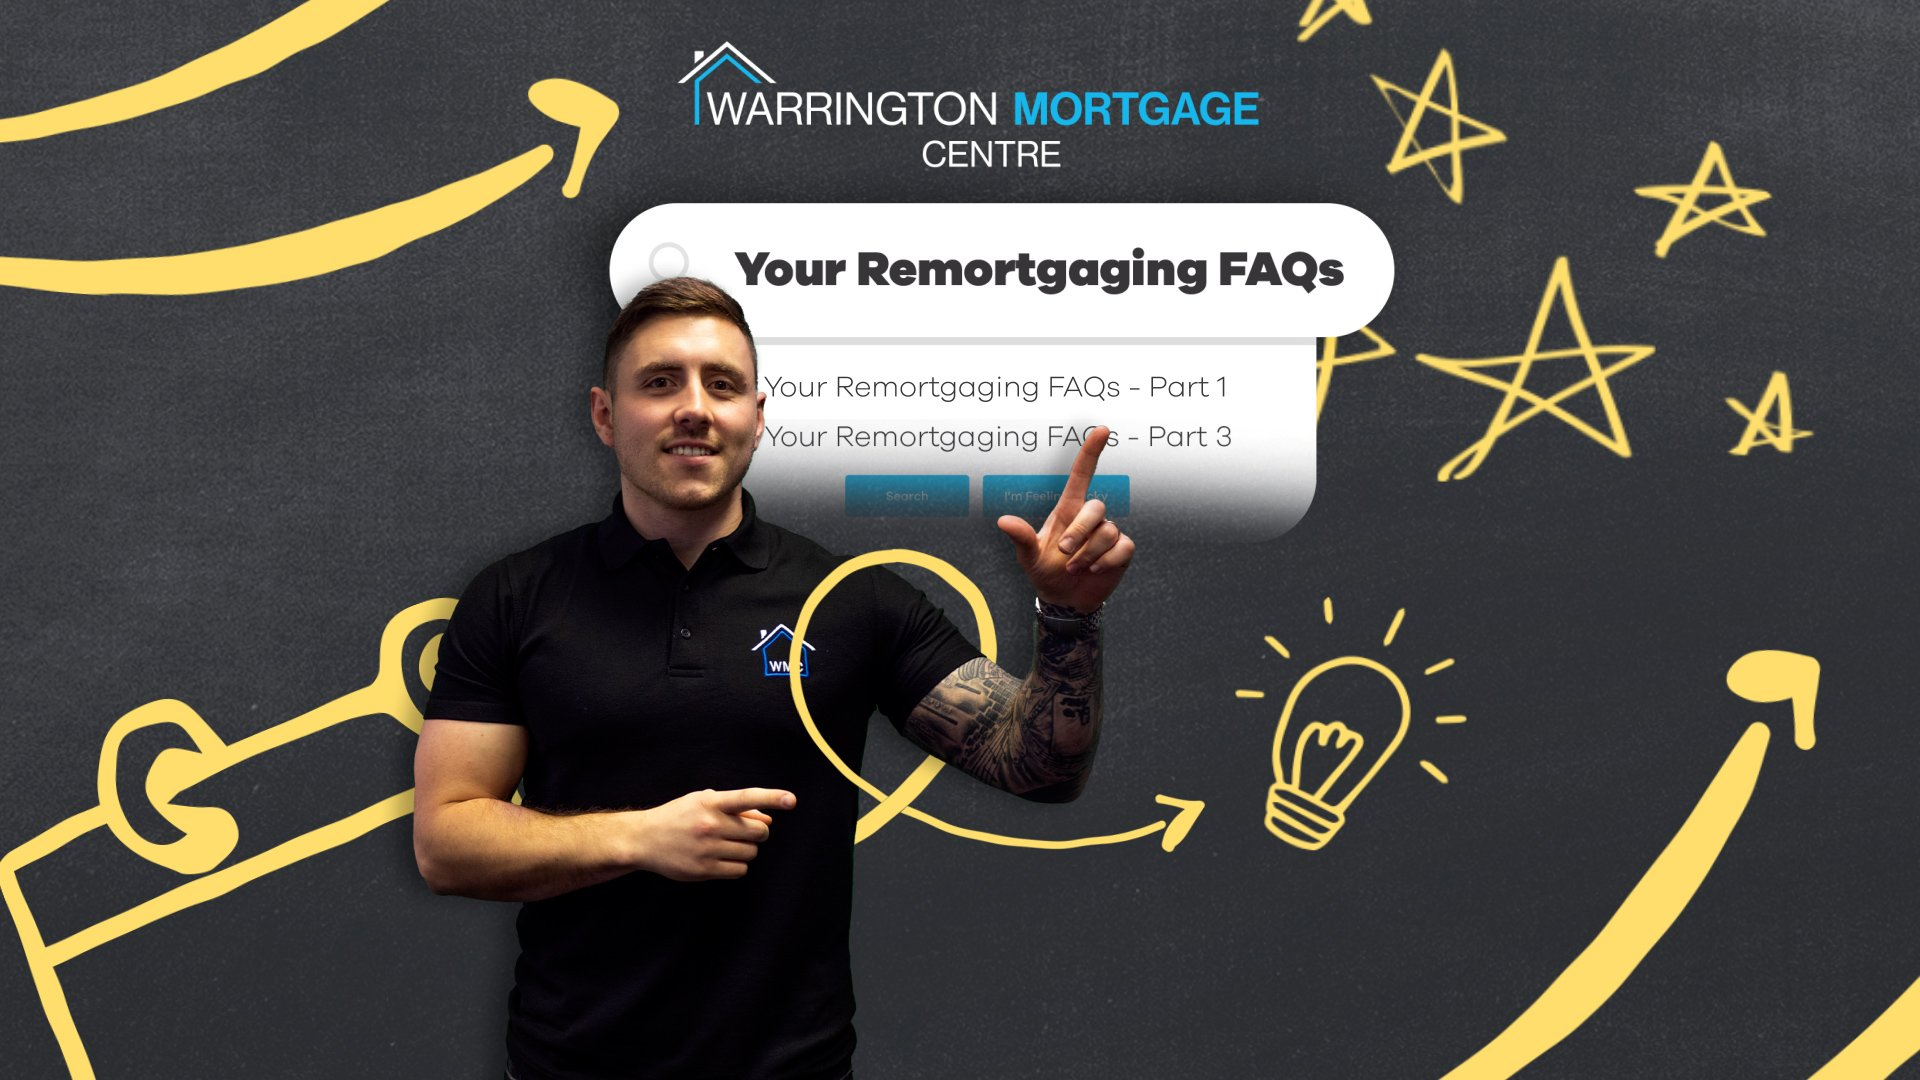 How do I remortgage for home improvements?